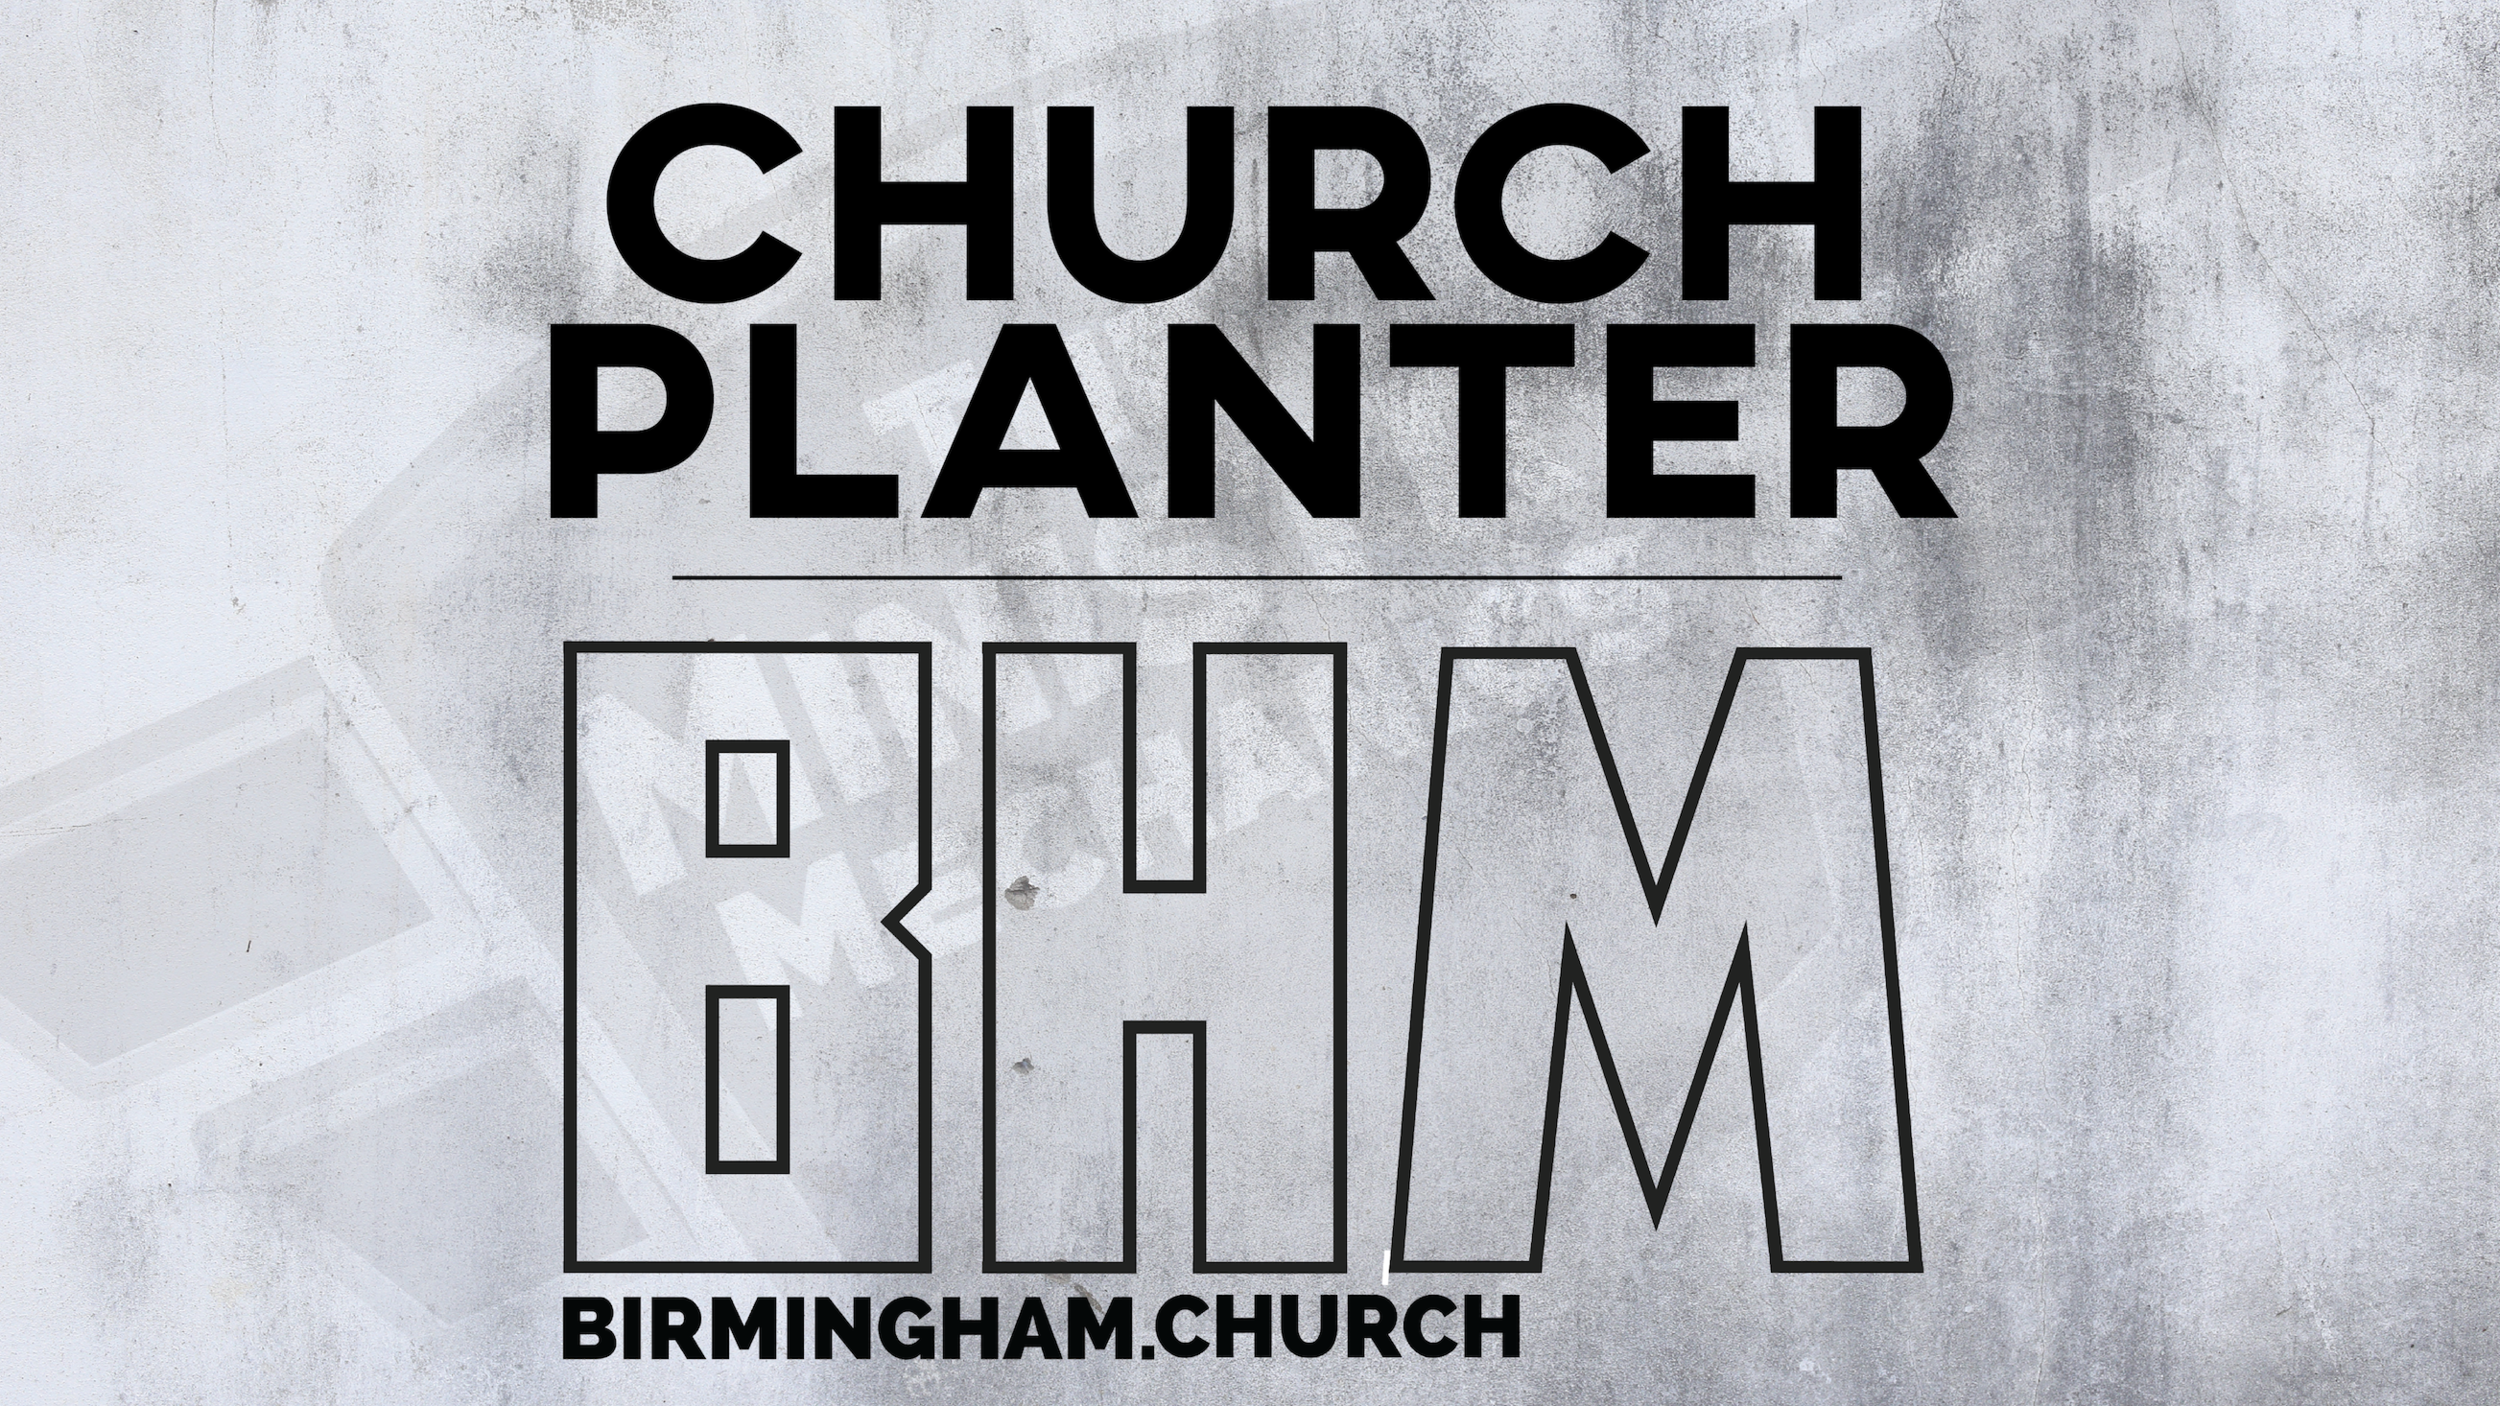 BHM Church Planter Graphic 16x9.png